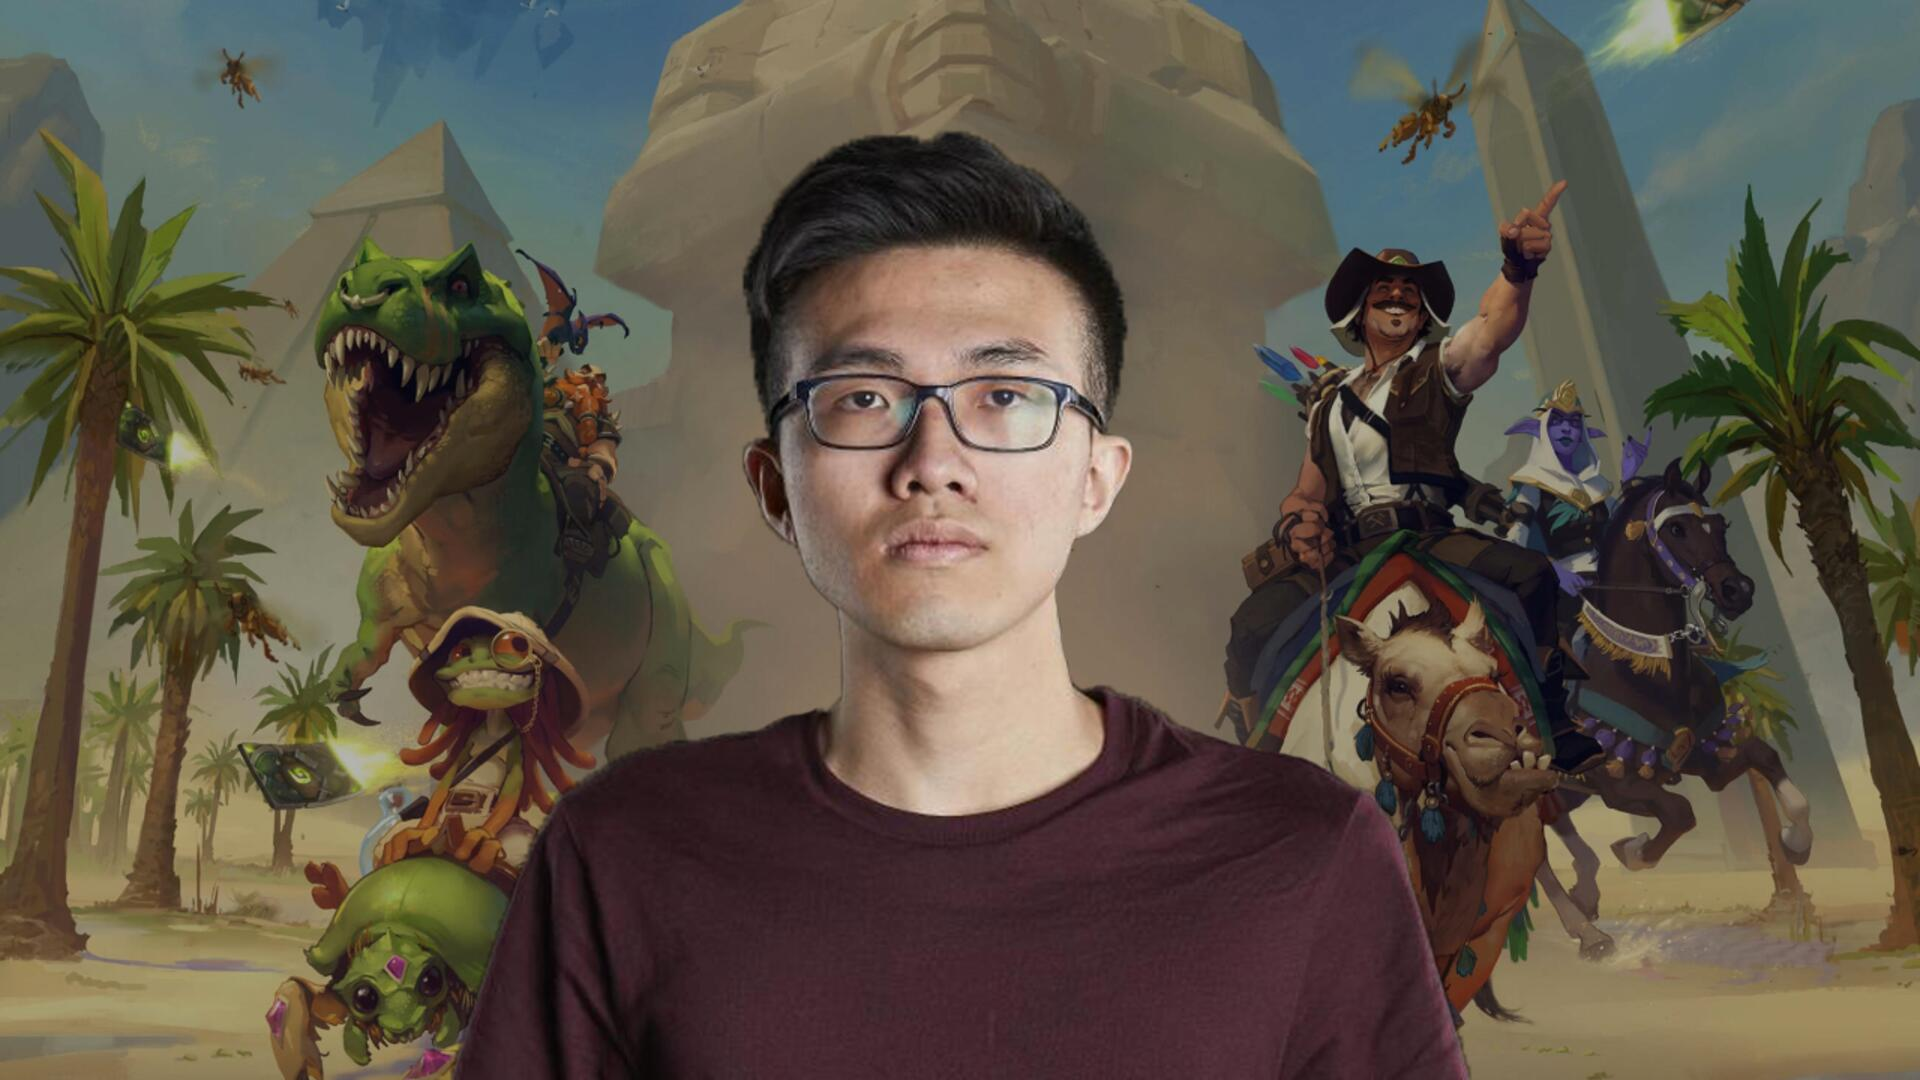 Blizzard Reduces Suspension of Hearthstone Player and Casters Following Community Outcry